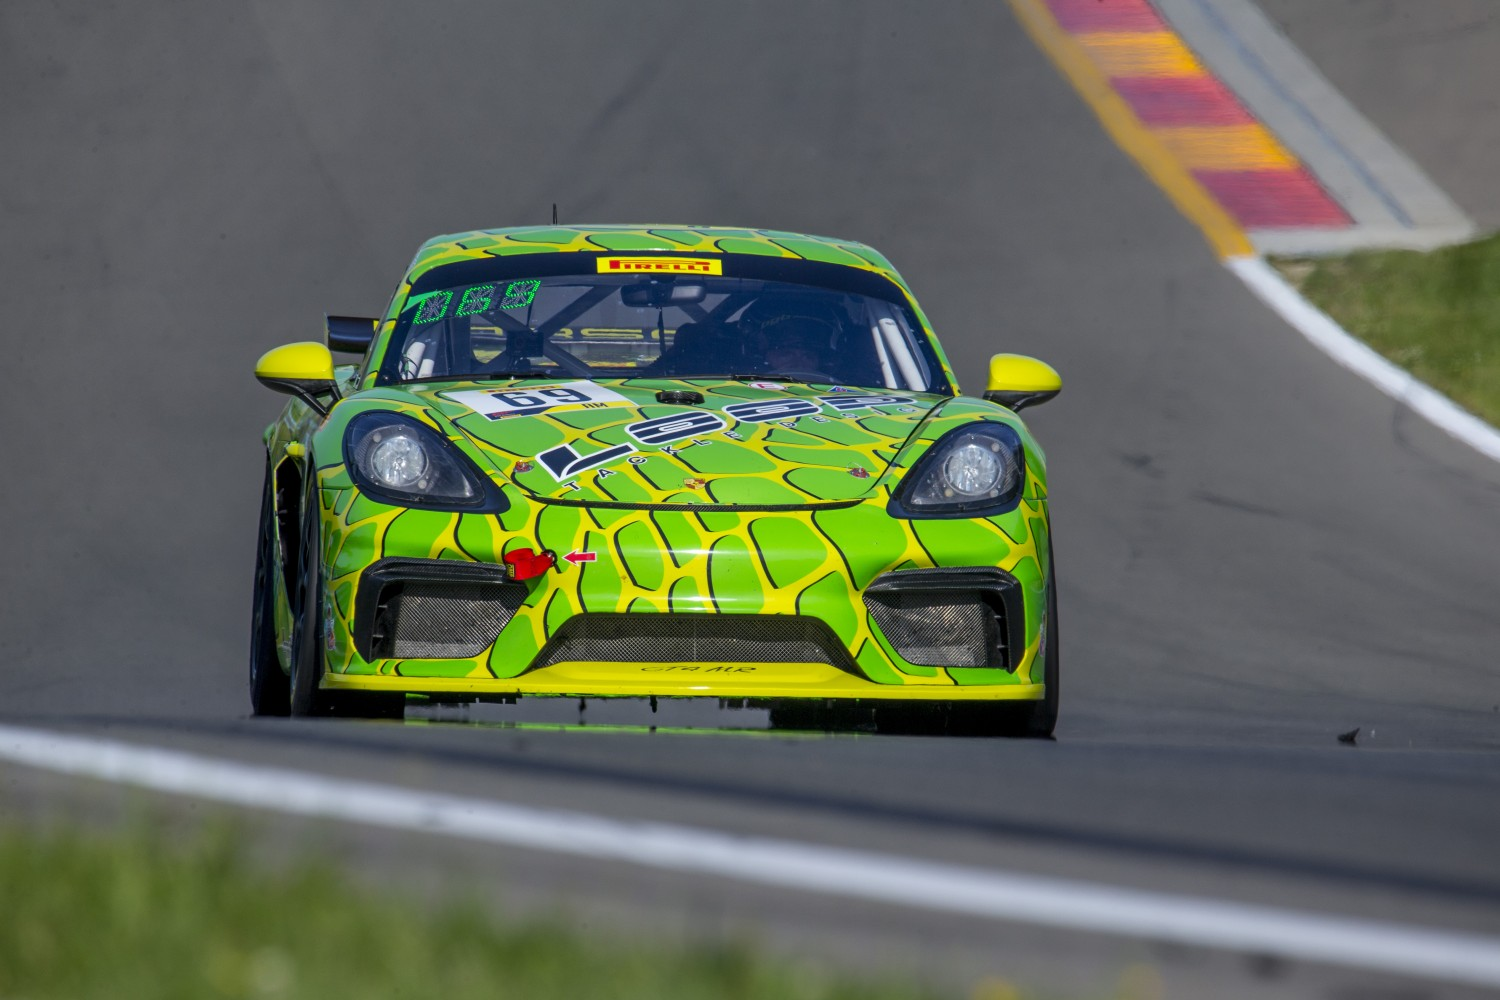 #69 Porsche Cayman GT4 CS-MR of Thomas Collingwood and John Tecce, BGB Motorsports Group, Watkins Glen World Challenge America, Watkins Glen NY  | Brian Cleary/SRO